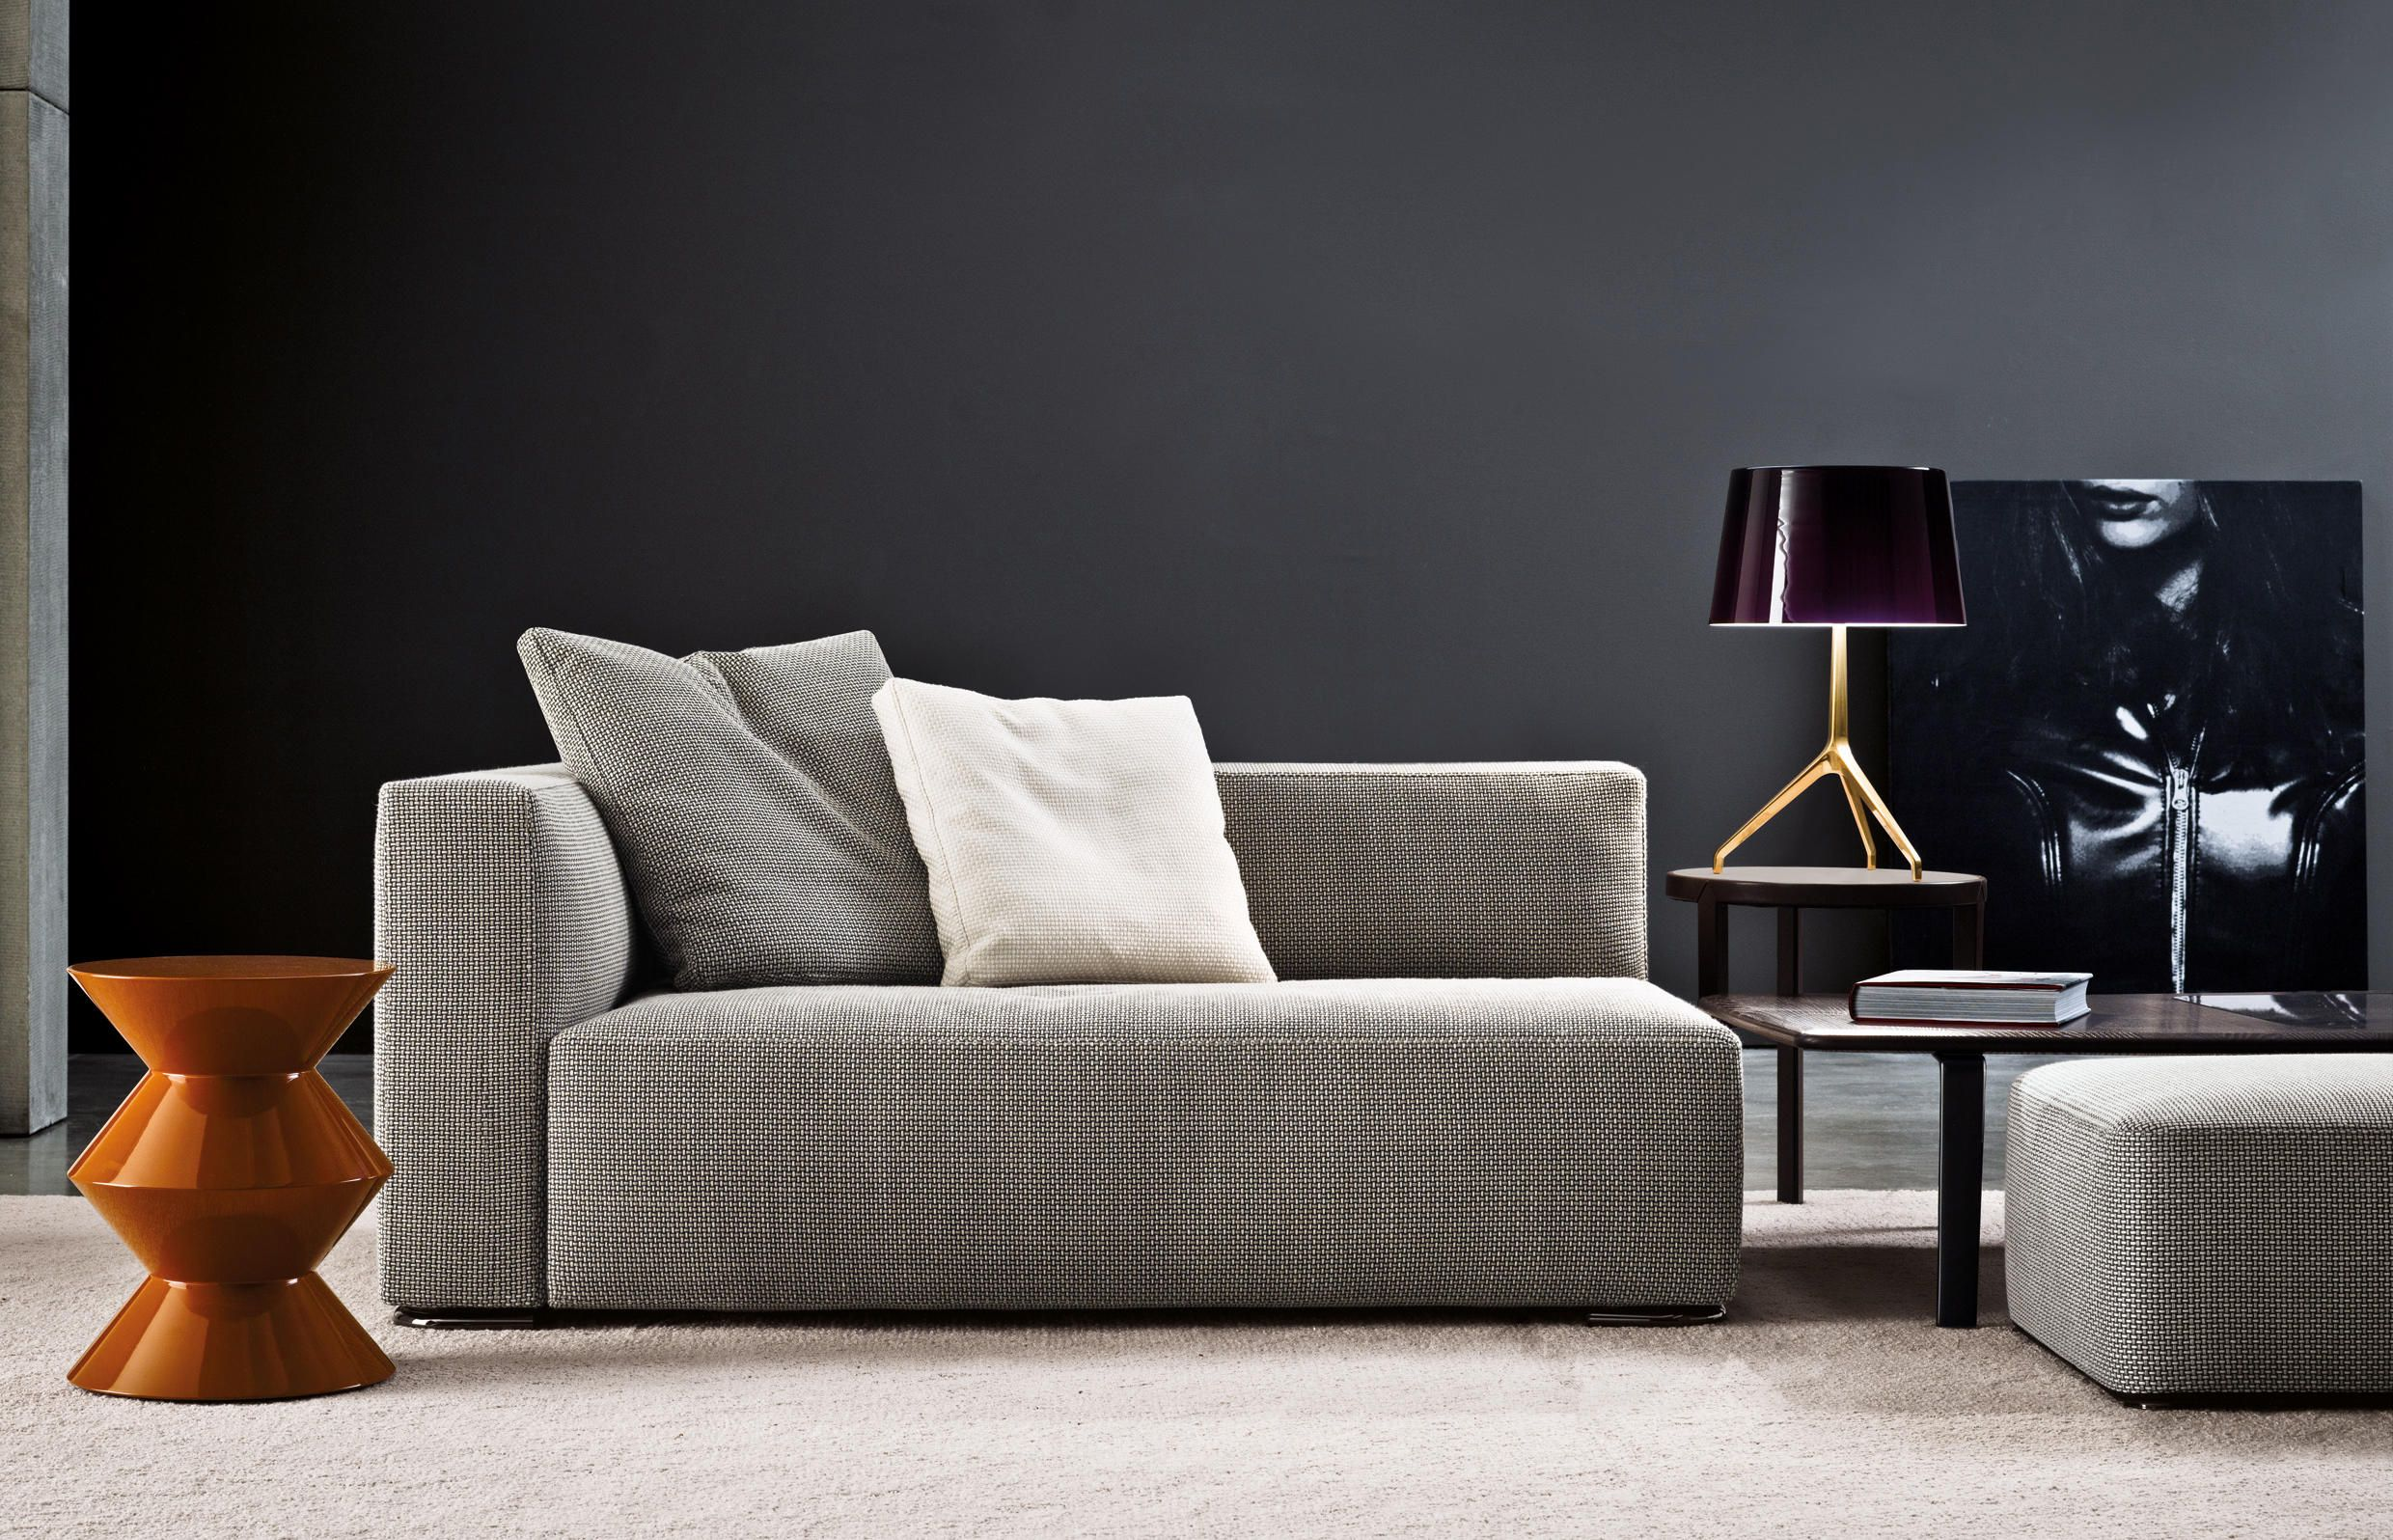 Donovan Designer Sofas From Minotti All Information High Resolution Images Cads Catalogues Contact Information Find Your Sofa Design Minotti Sofa